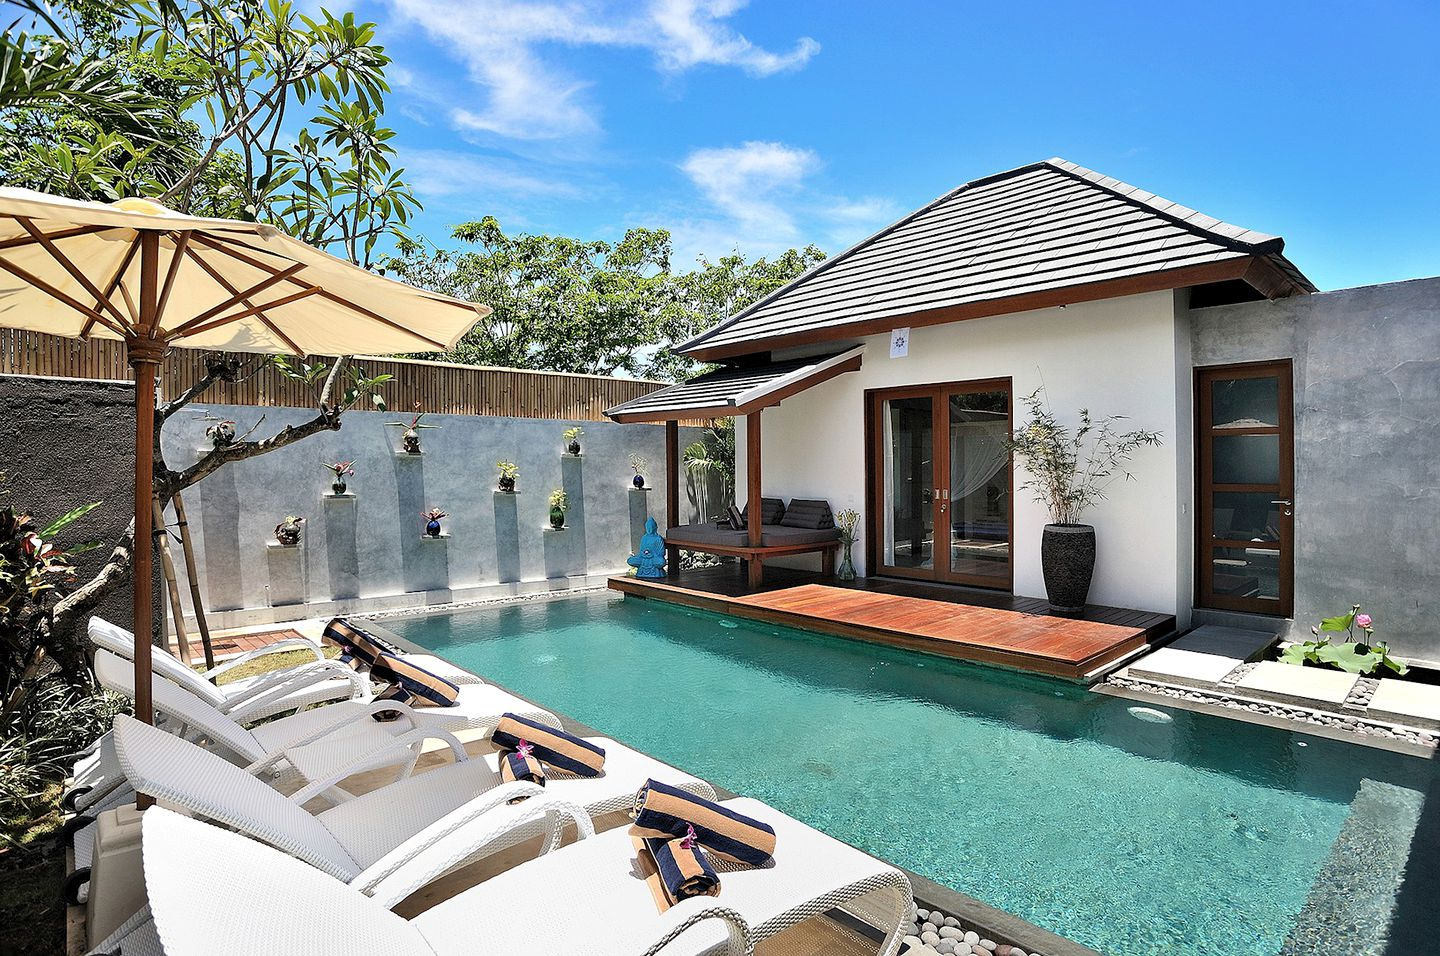 Bali villa for a holiday in Indonesia